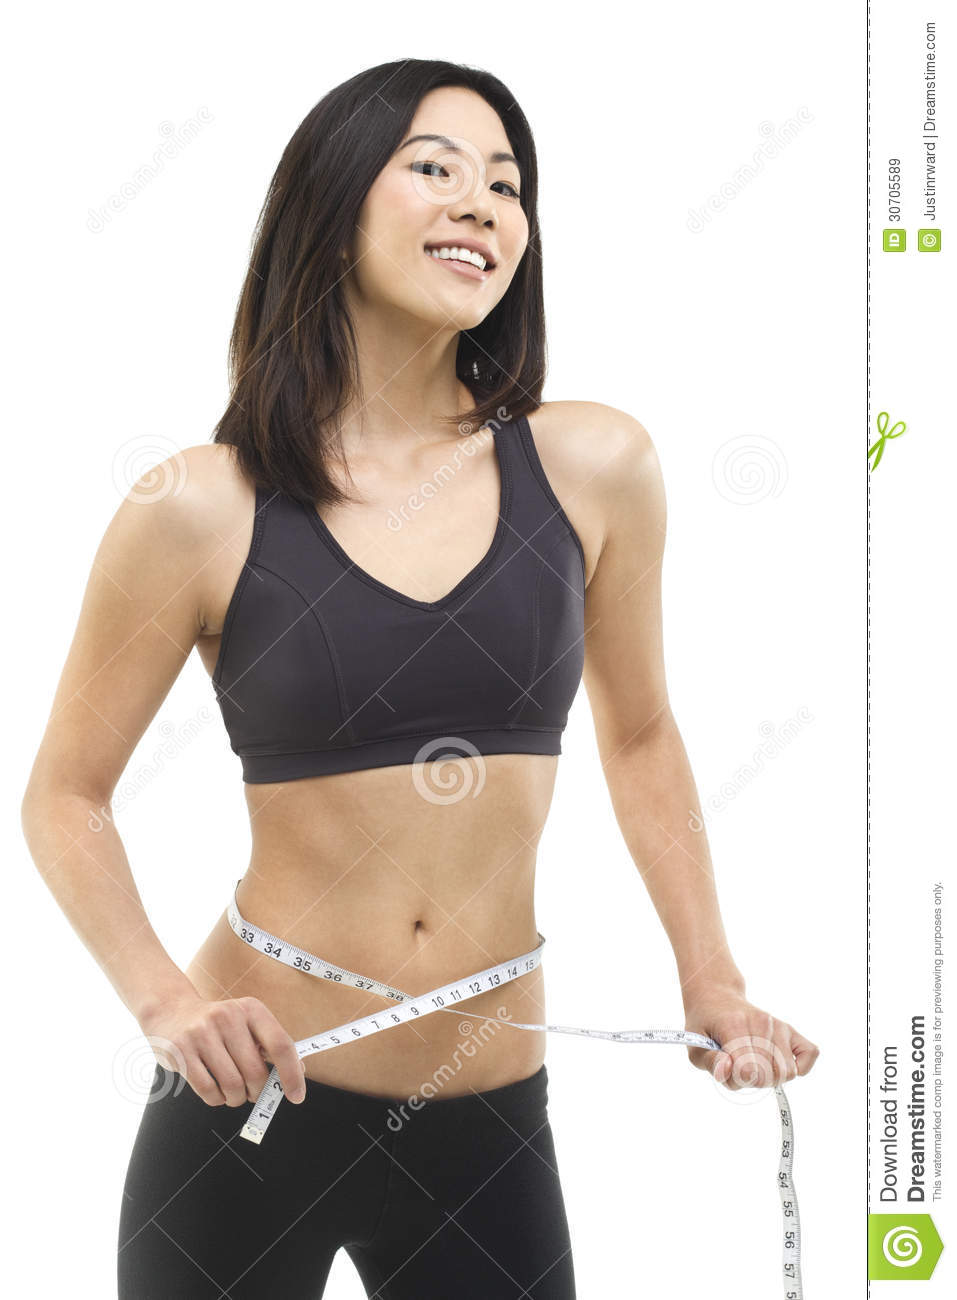 Forum on this topic: Exercising but Not Losing Weight, exercising-but-not-losing-weight/